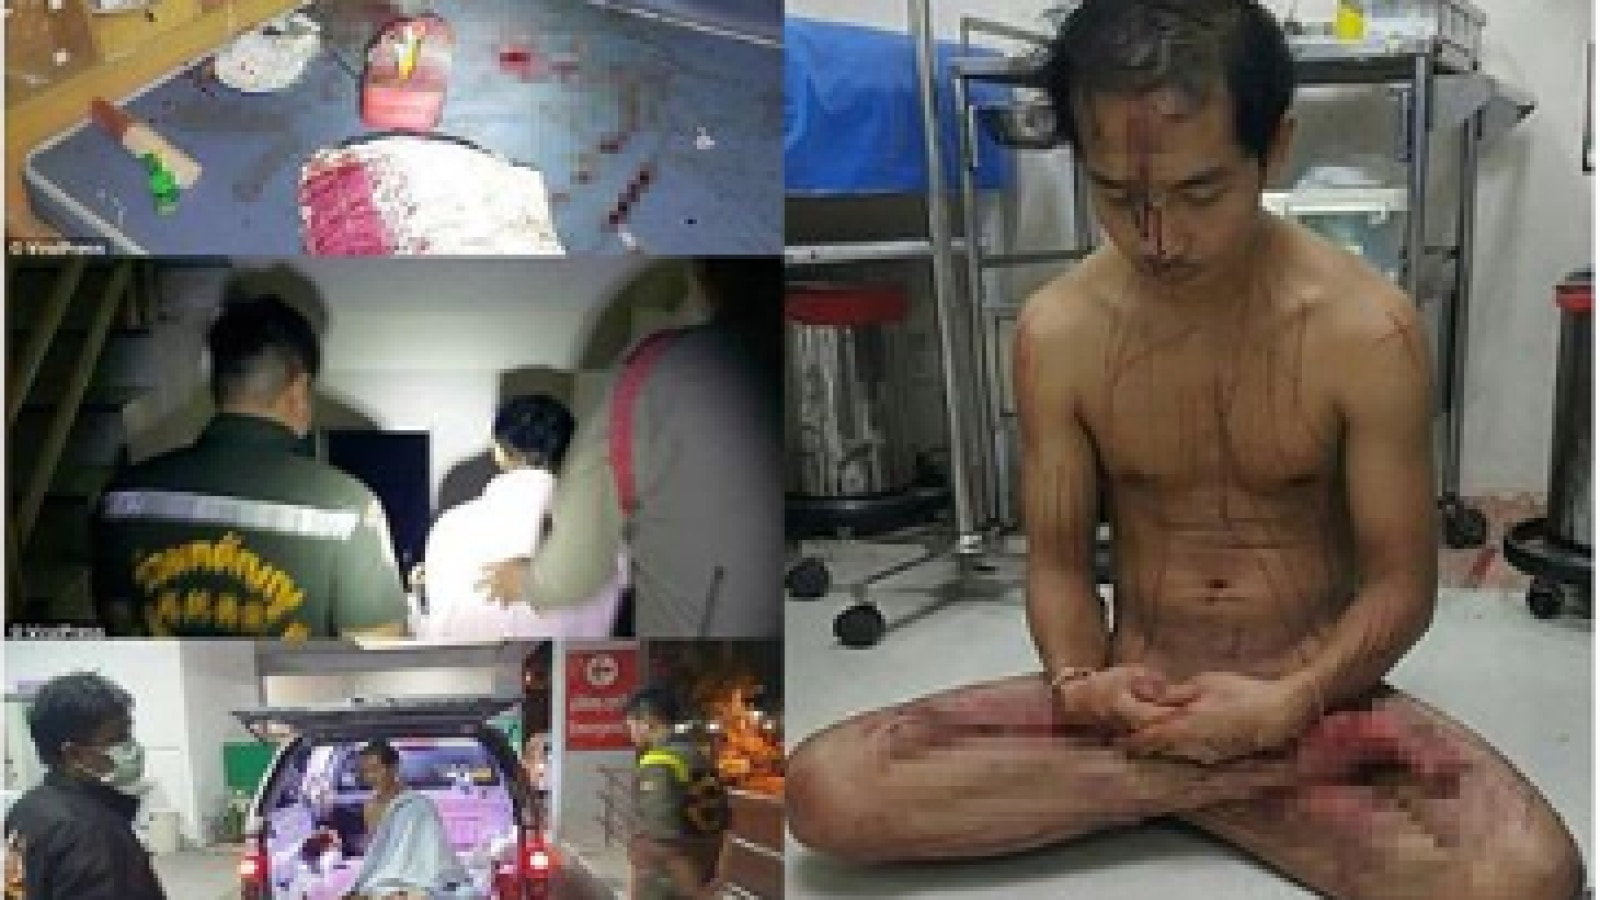 Ug here we go again, man cuts off own penis during fight with girlfriend in taiwan